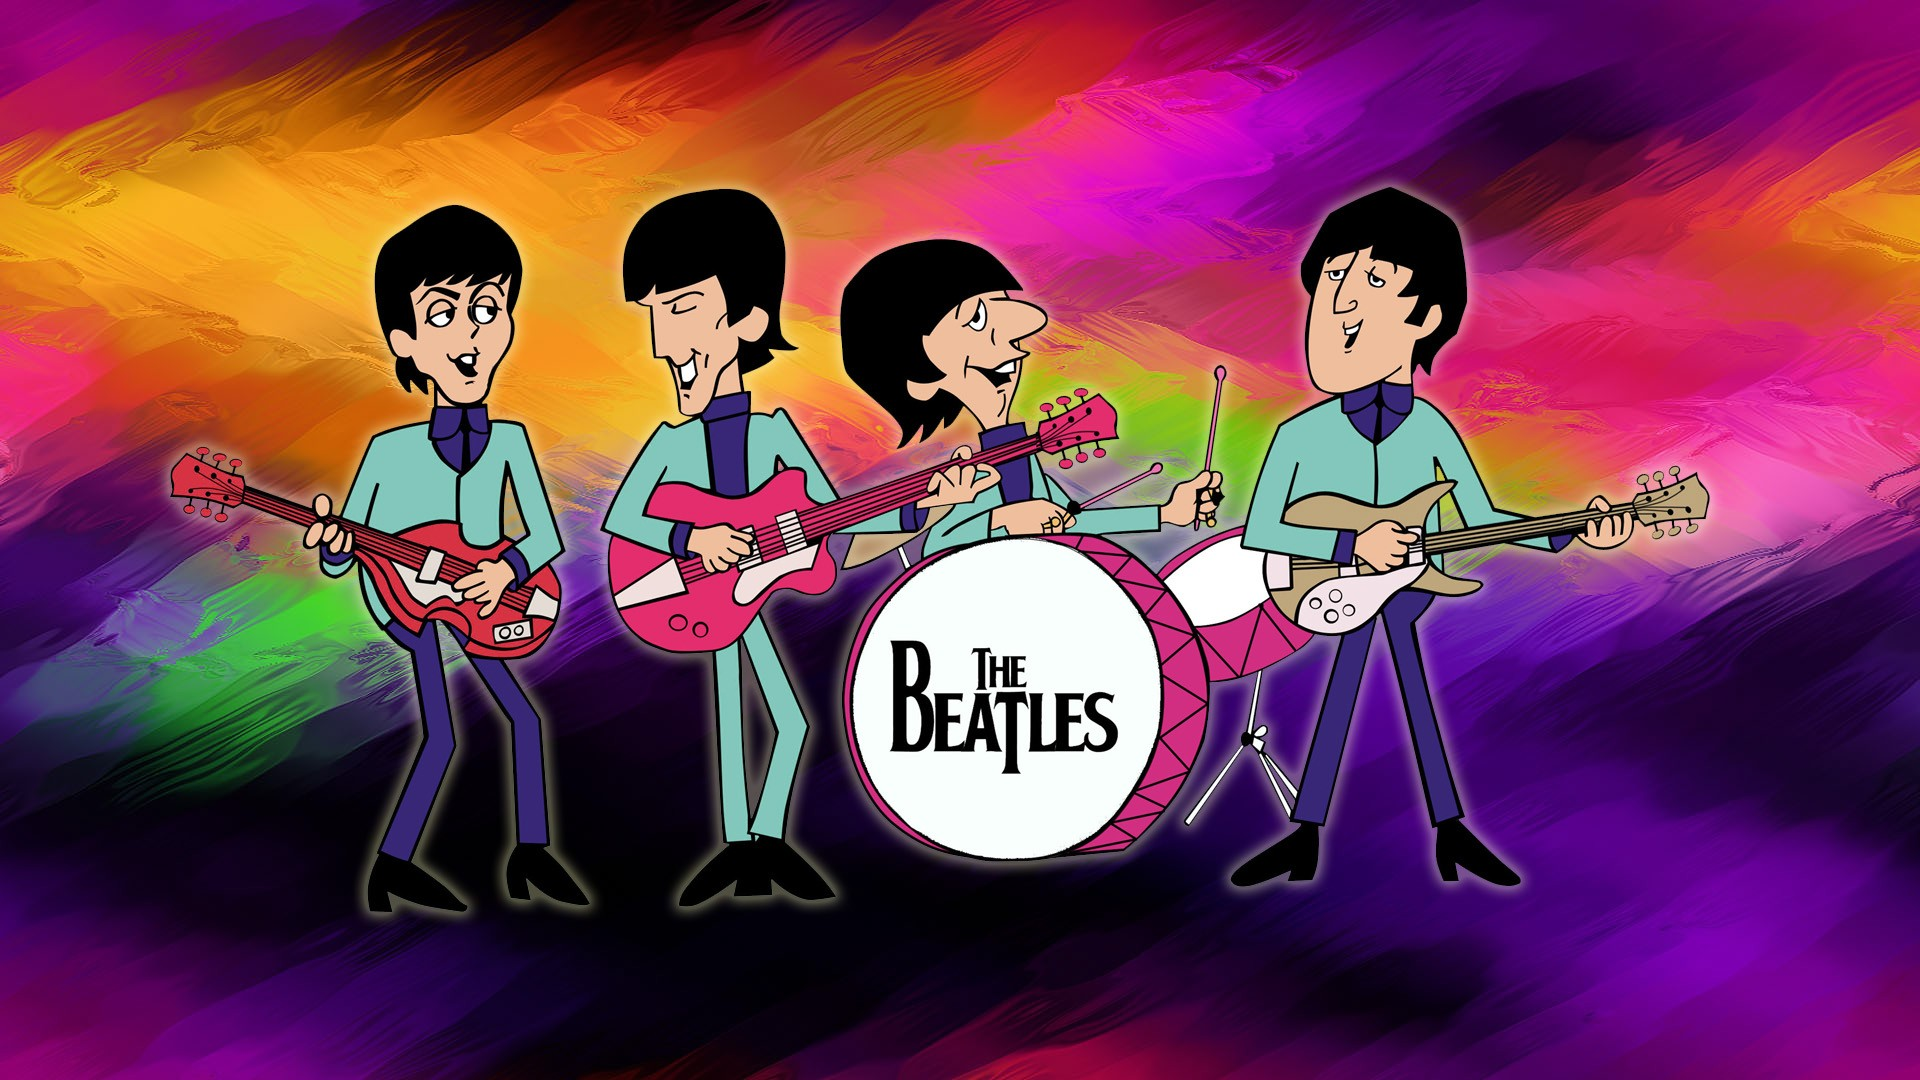 The Beatles Desktop Wallpaper